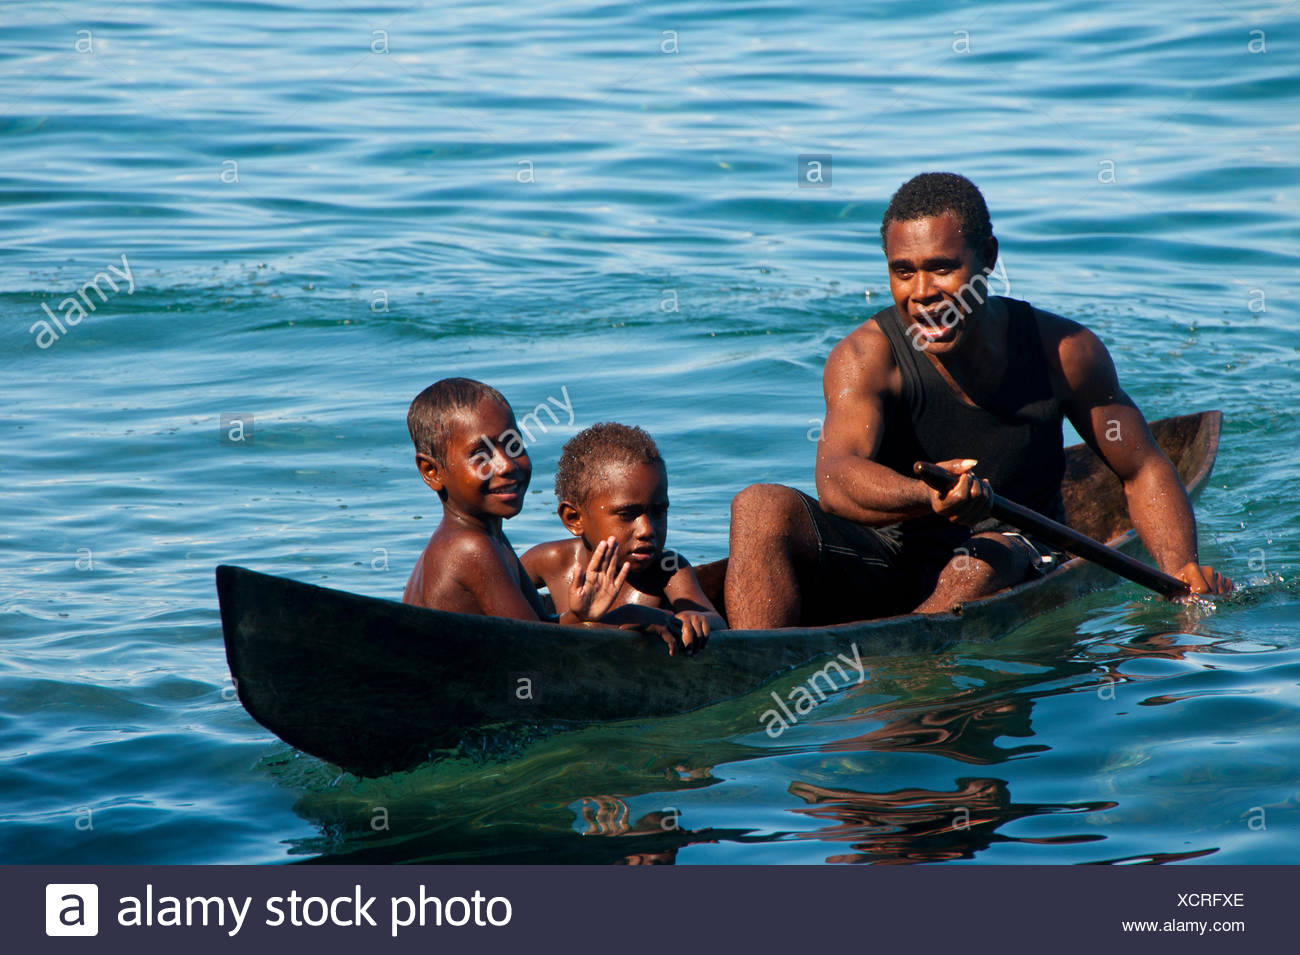 A man and two children in a canoe, Savo Island, Central Province, Solomon Islands - Stock Image